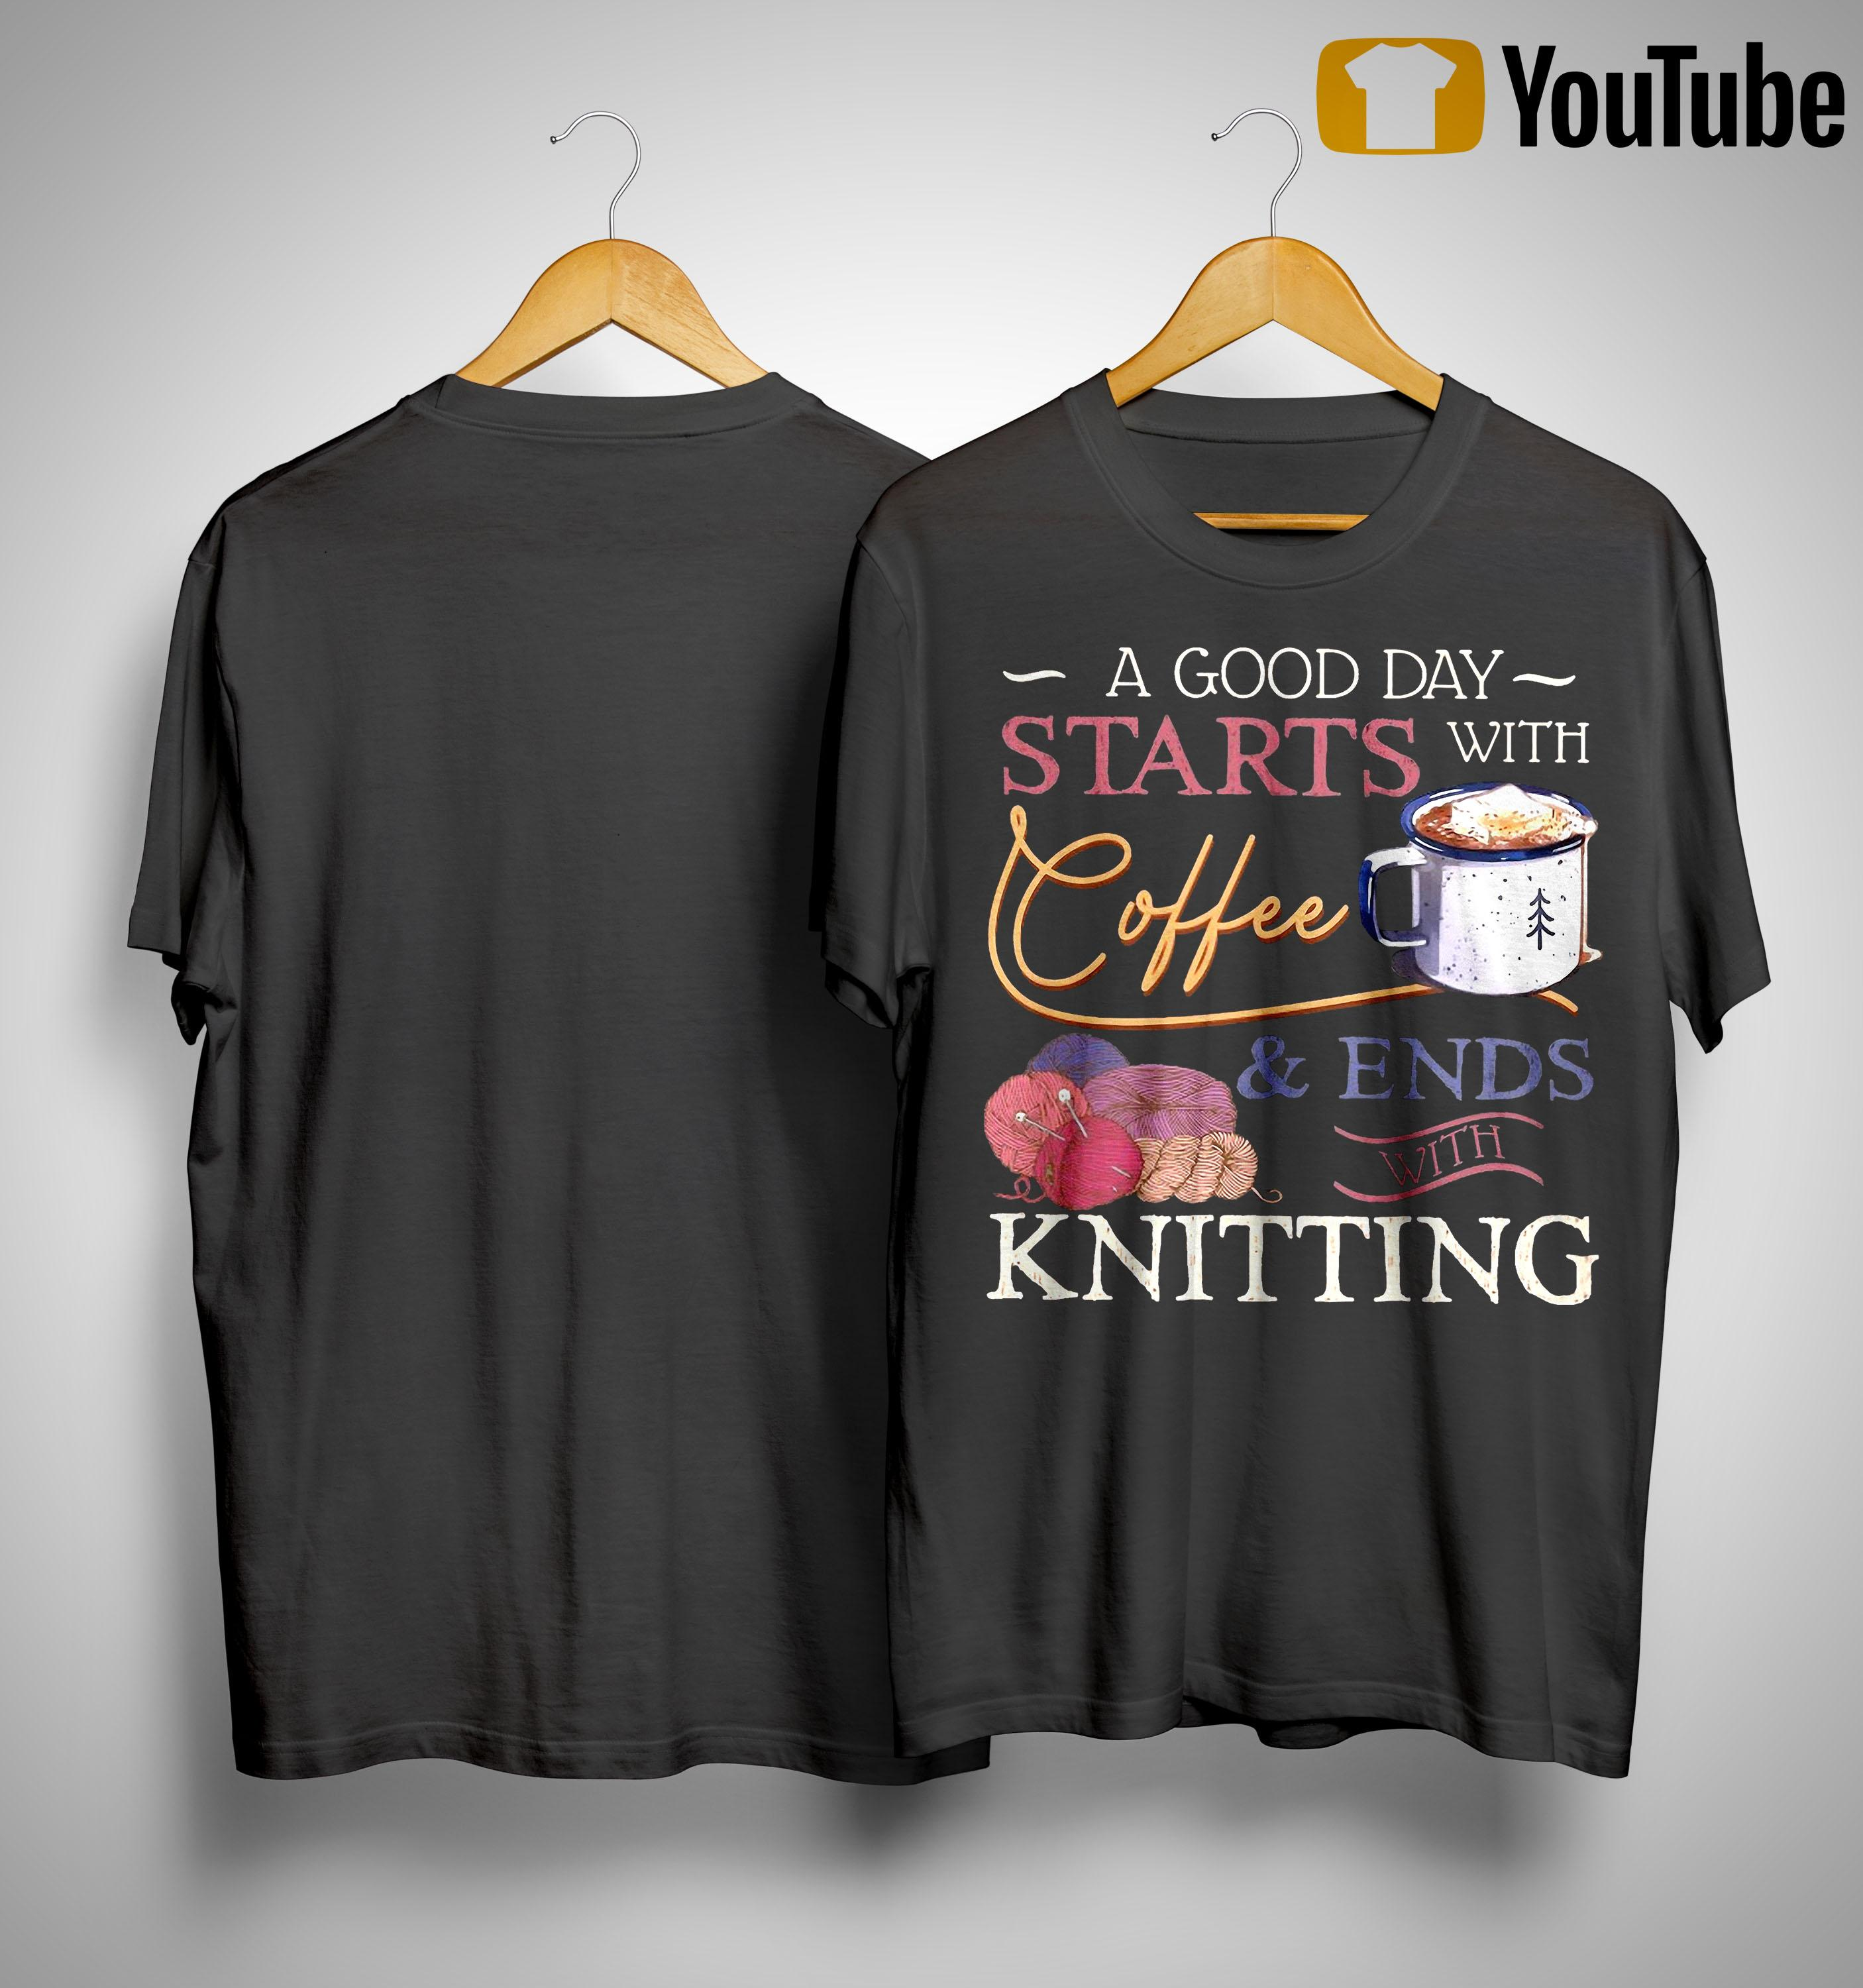 A Good Day Starts With Coffee And Ends With Knitting Shirt